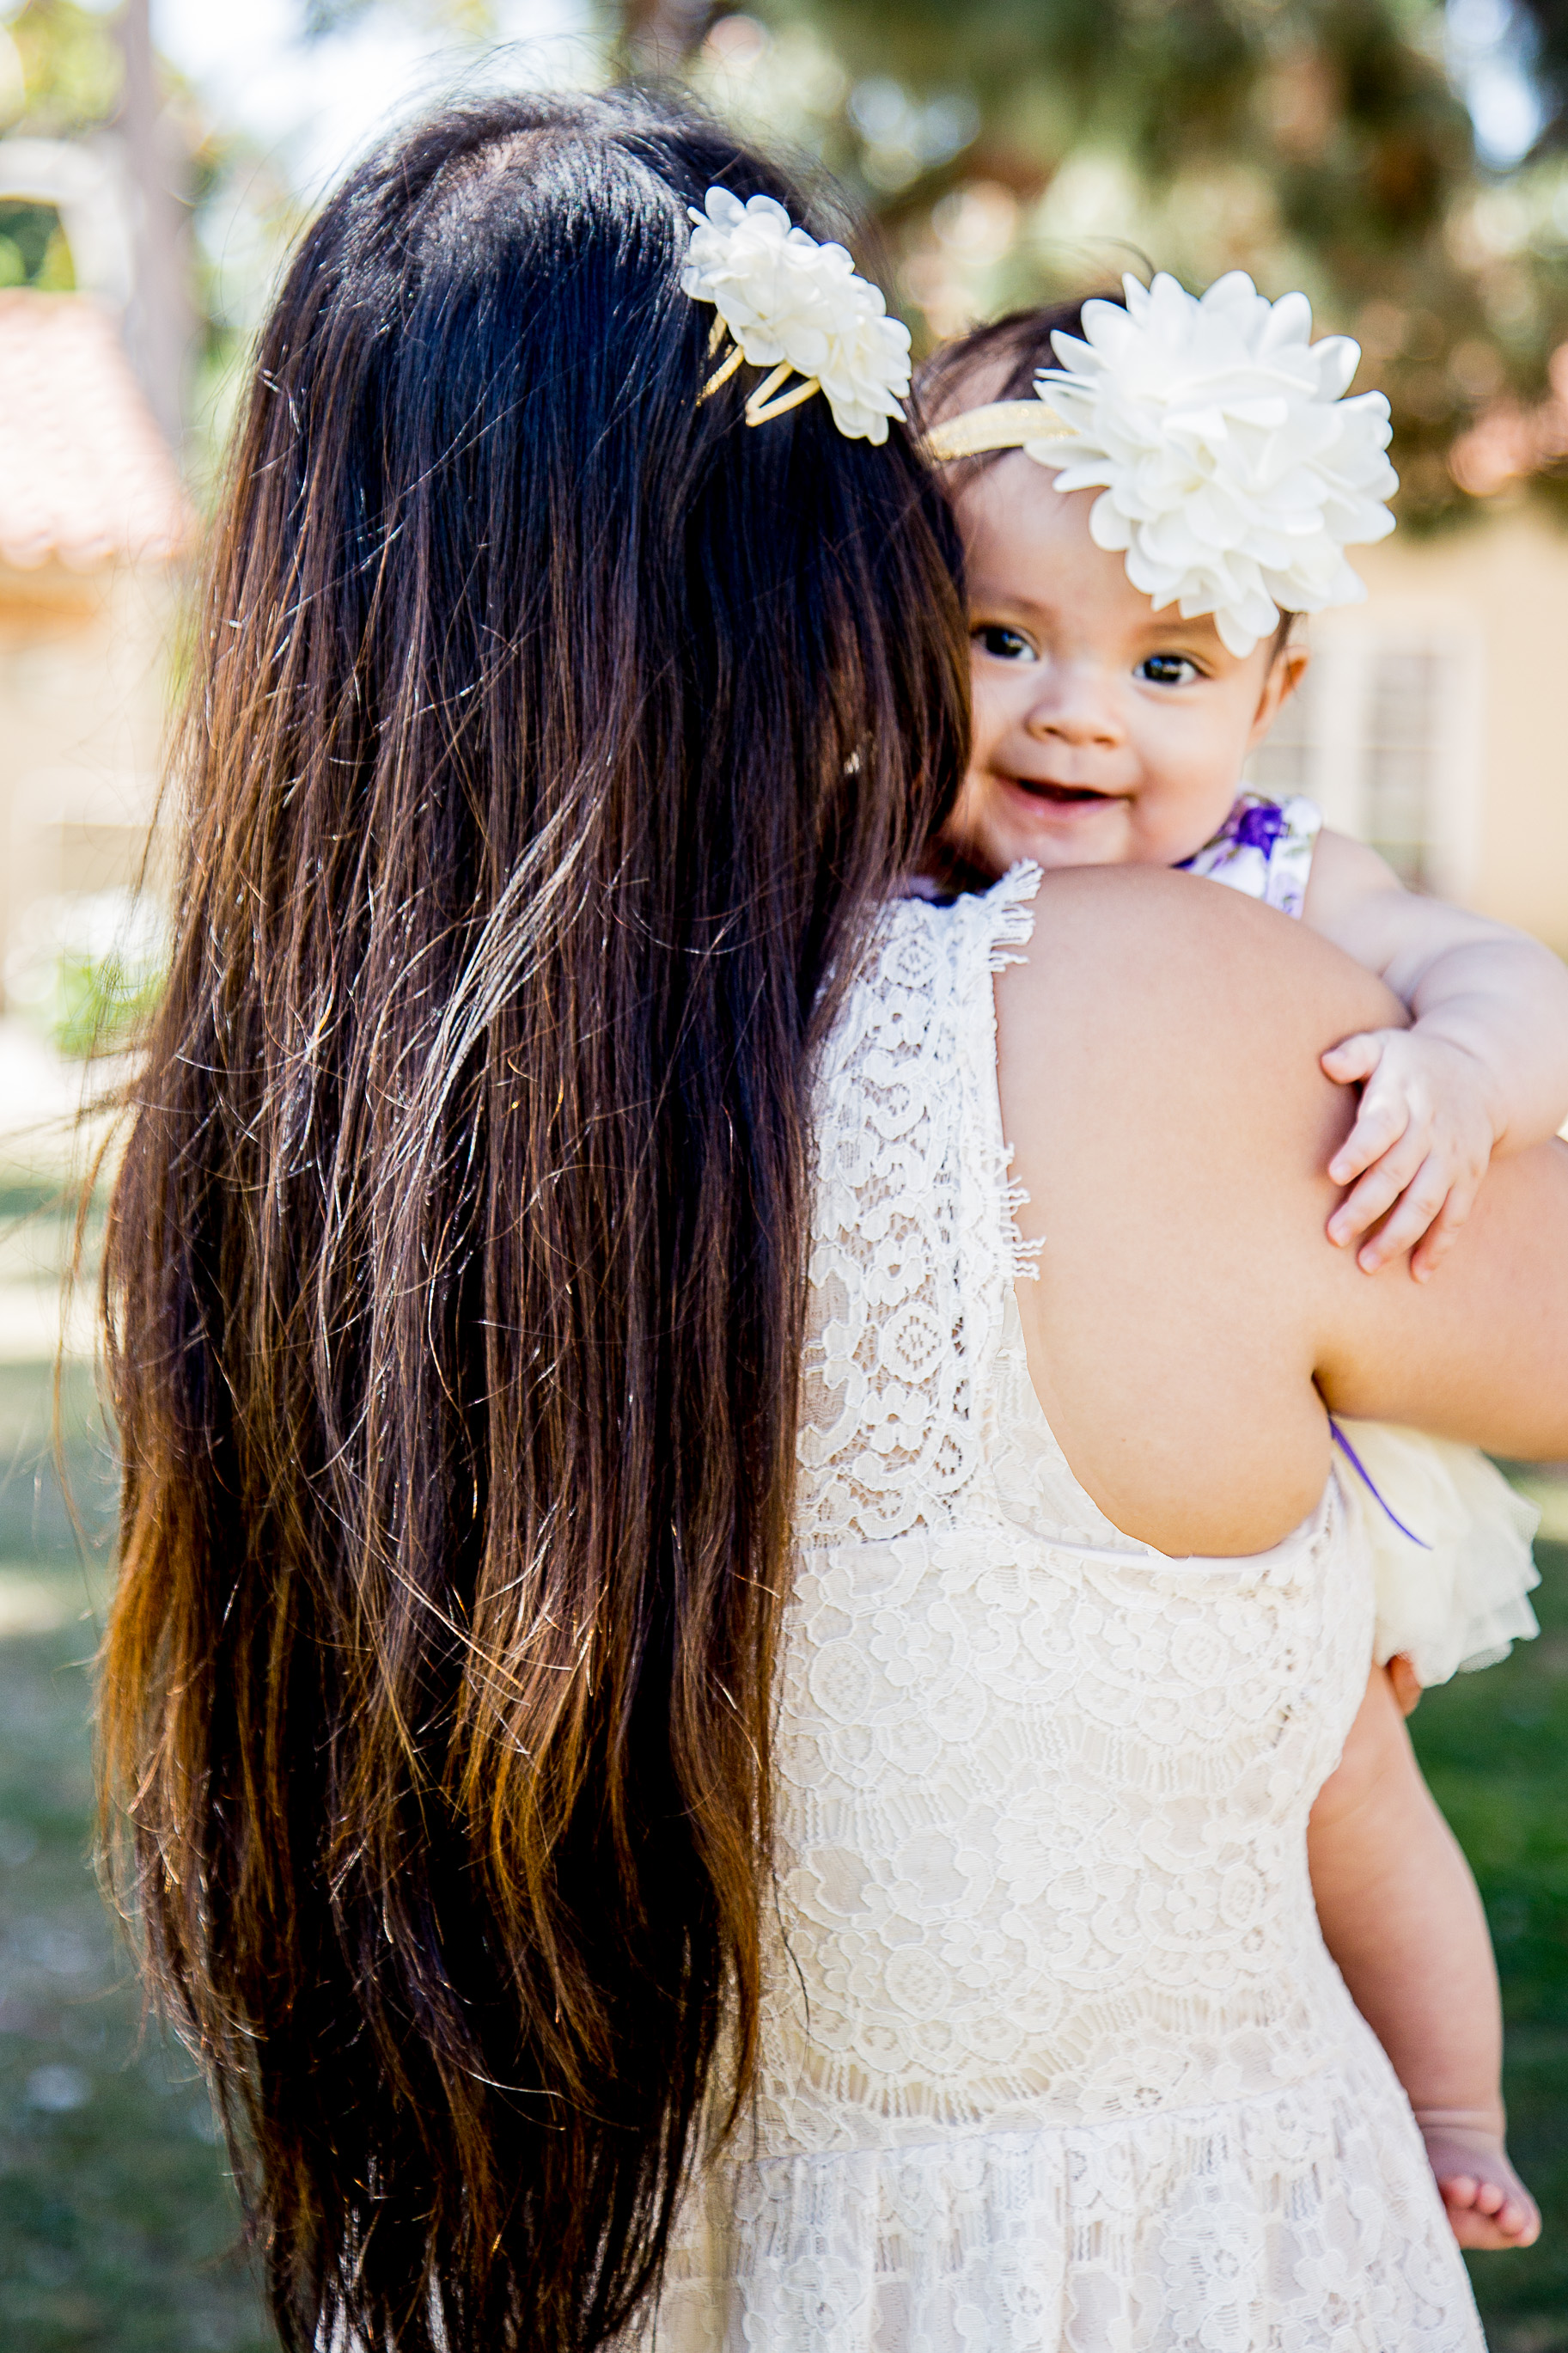 Balboa-park-mommy-session-five-month-baby-cutural-cottages-san-diego-california-purple-and-cream-lace-florals